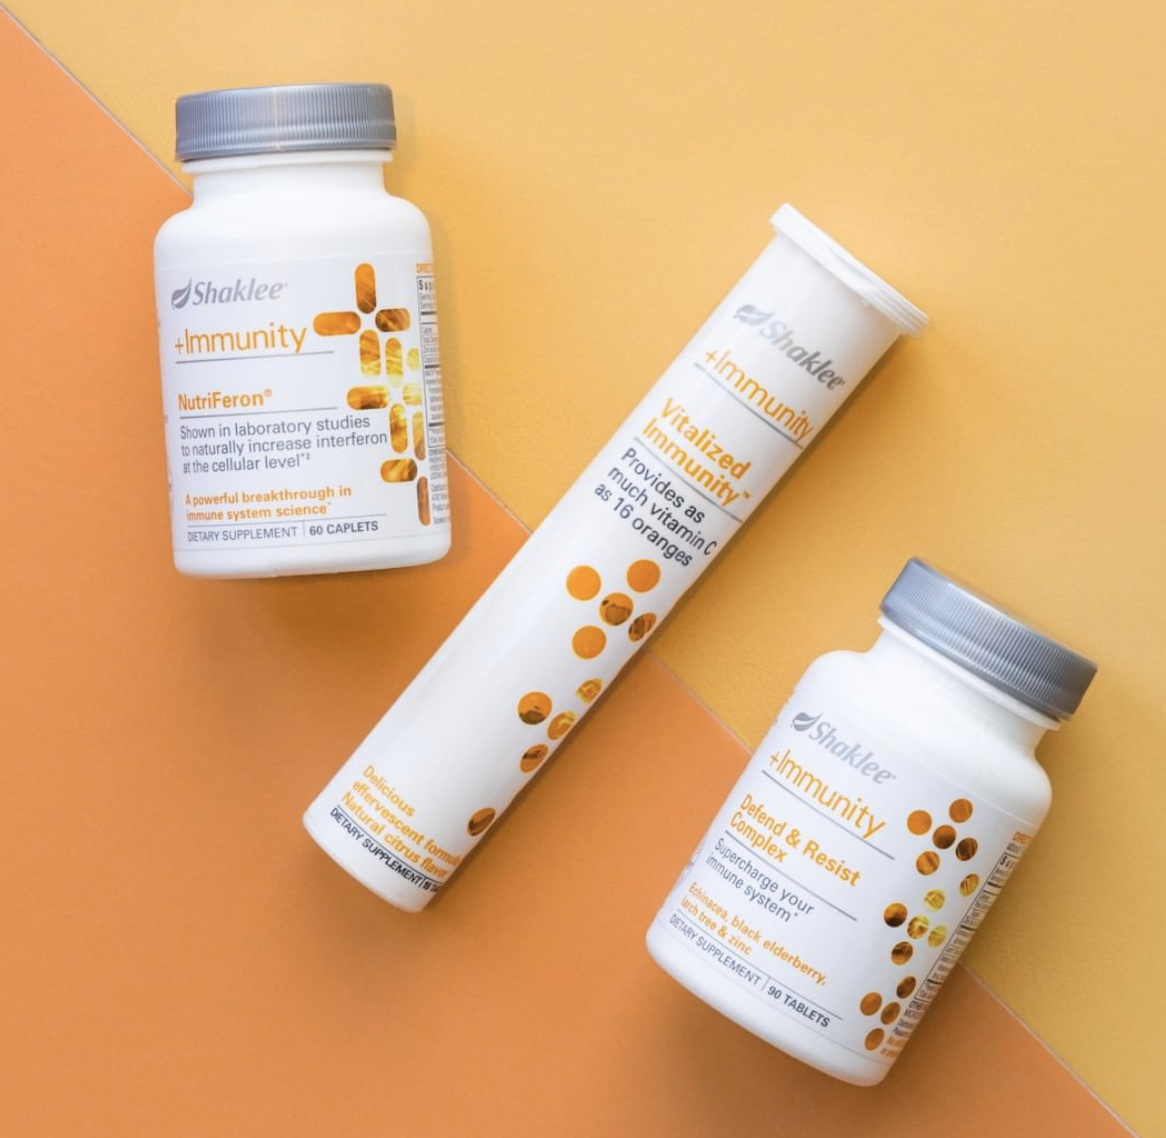 Fight OffSeasonal Sickness! - With school back in session, germs are at an all time high. Go on the offense this season with your health and fuel your immune system with my favorite immunity products. This month take 15% off select products!